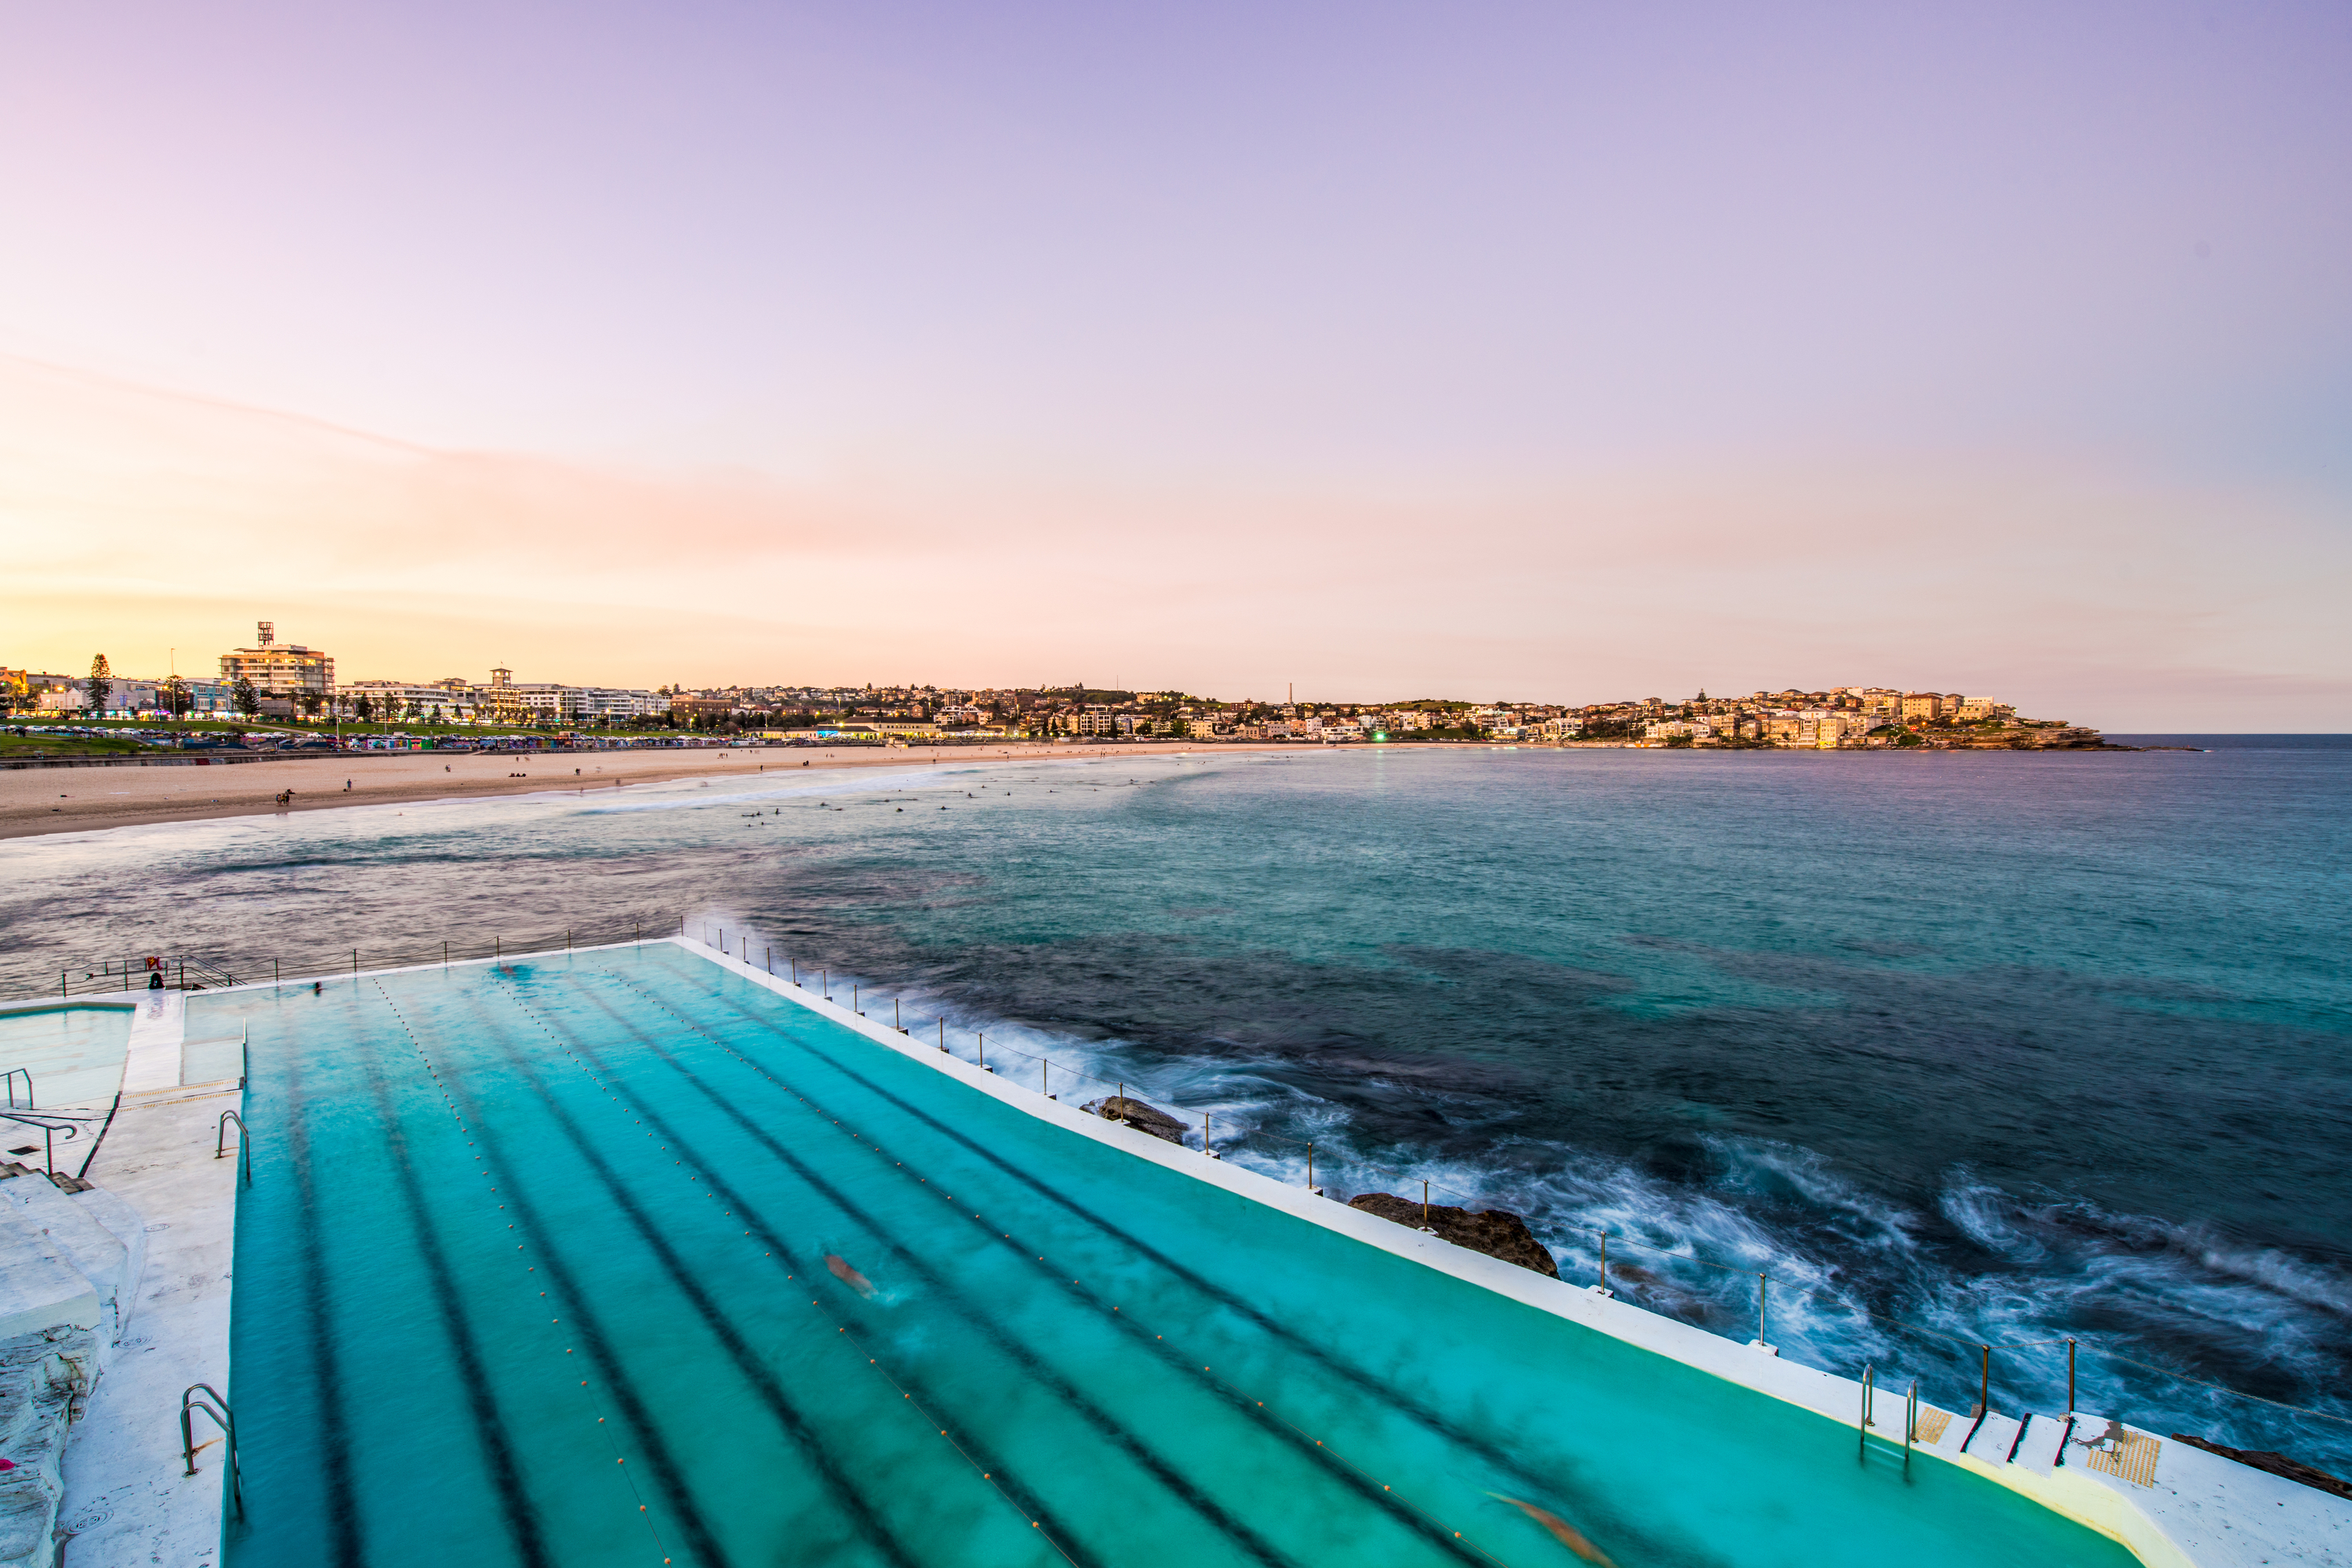 If you're looking for a perfect beach vacation destination, look no further than Bondi Beach in Australia! You will love it. Here's everything you need to know about Bondi Beach.